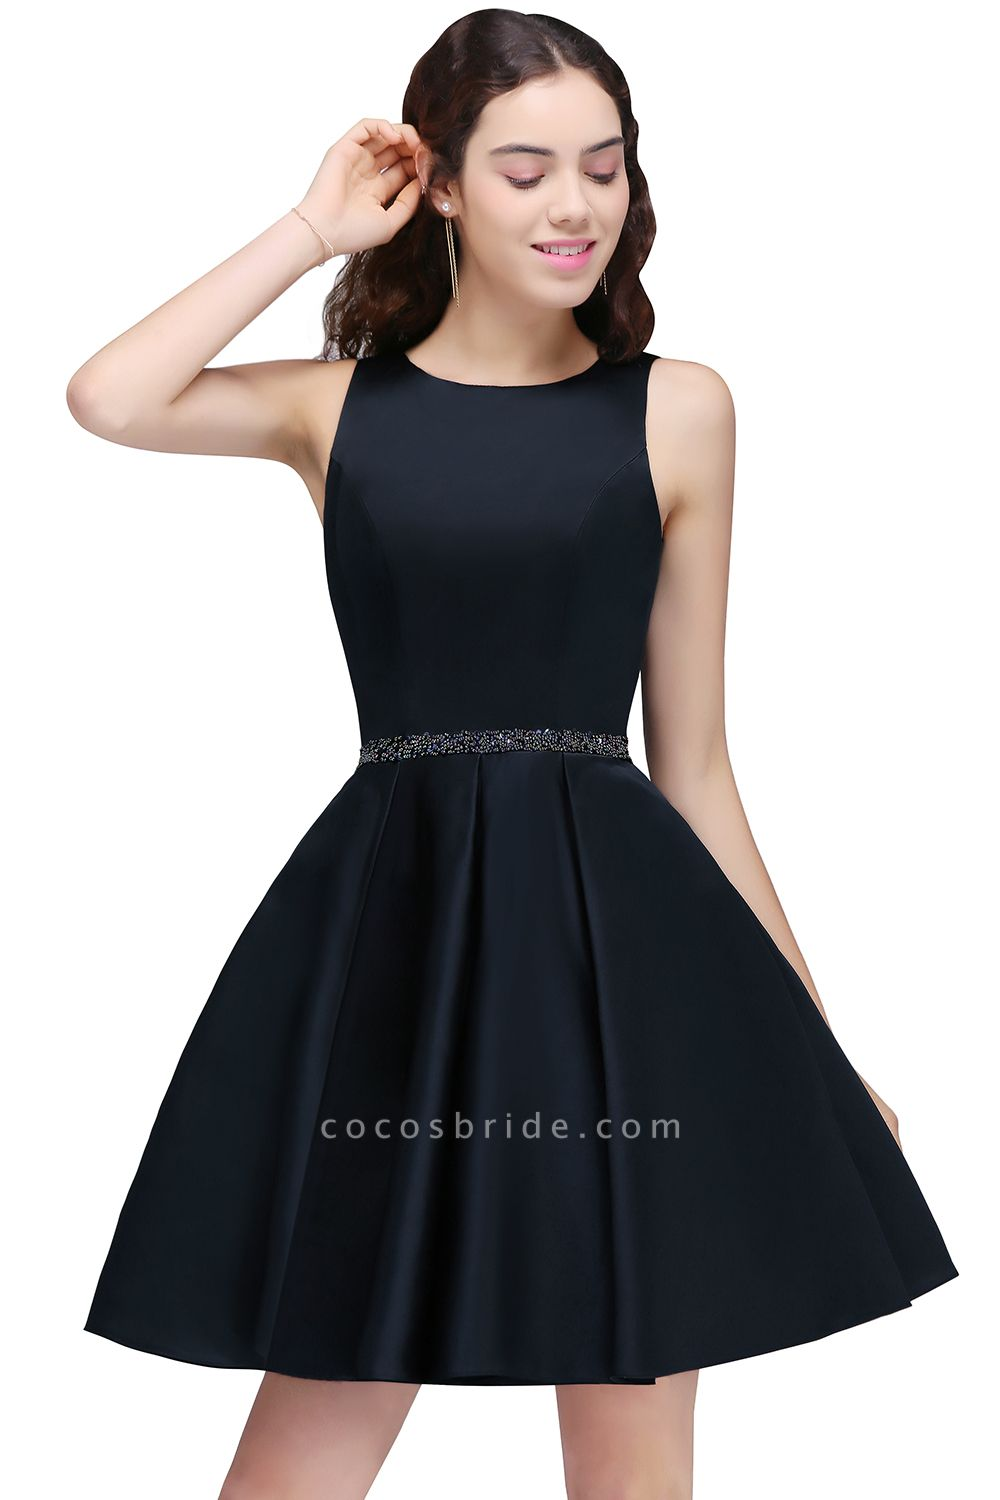 BRIANNA | A-Line Round Neck Short Dark Navy Homecoming Dresses With Crystal